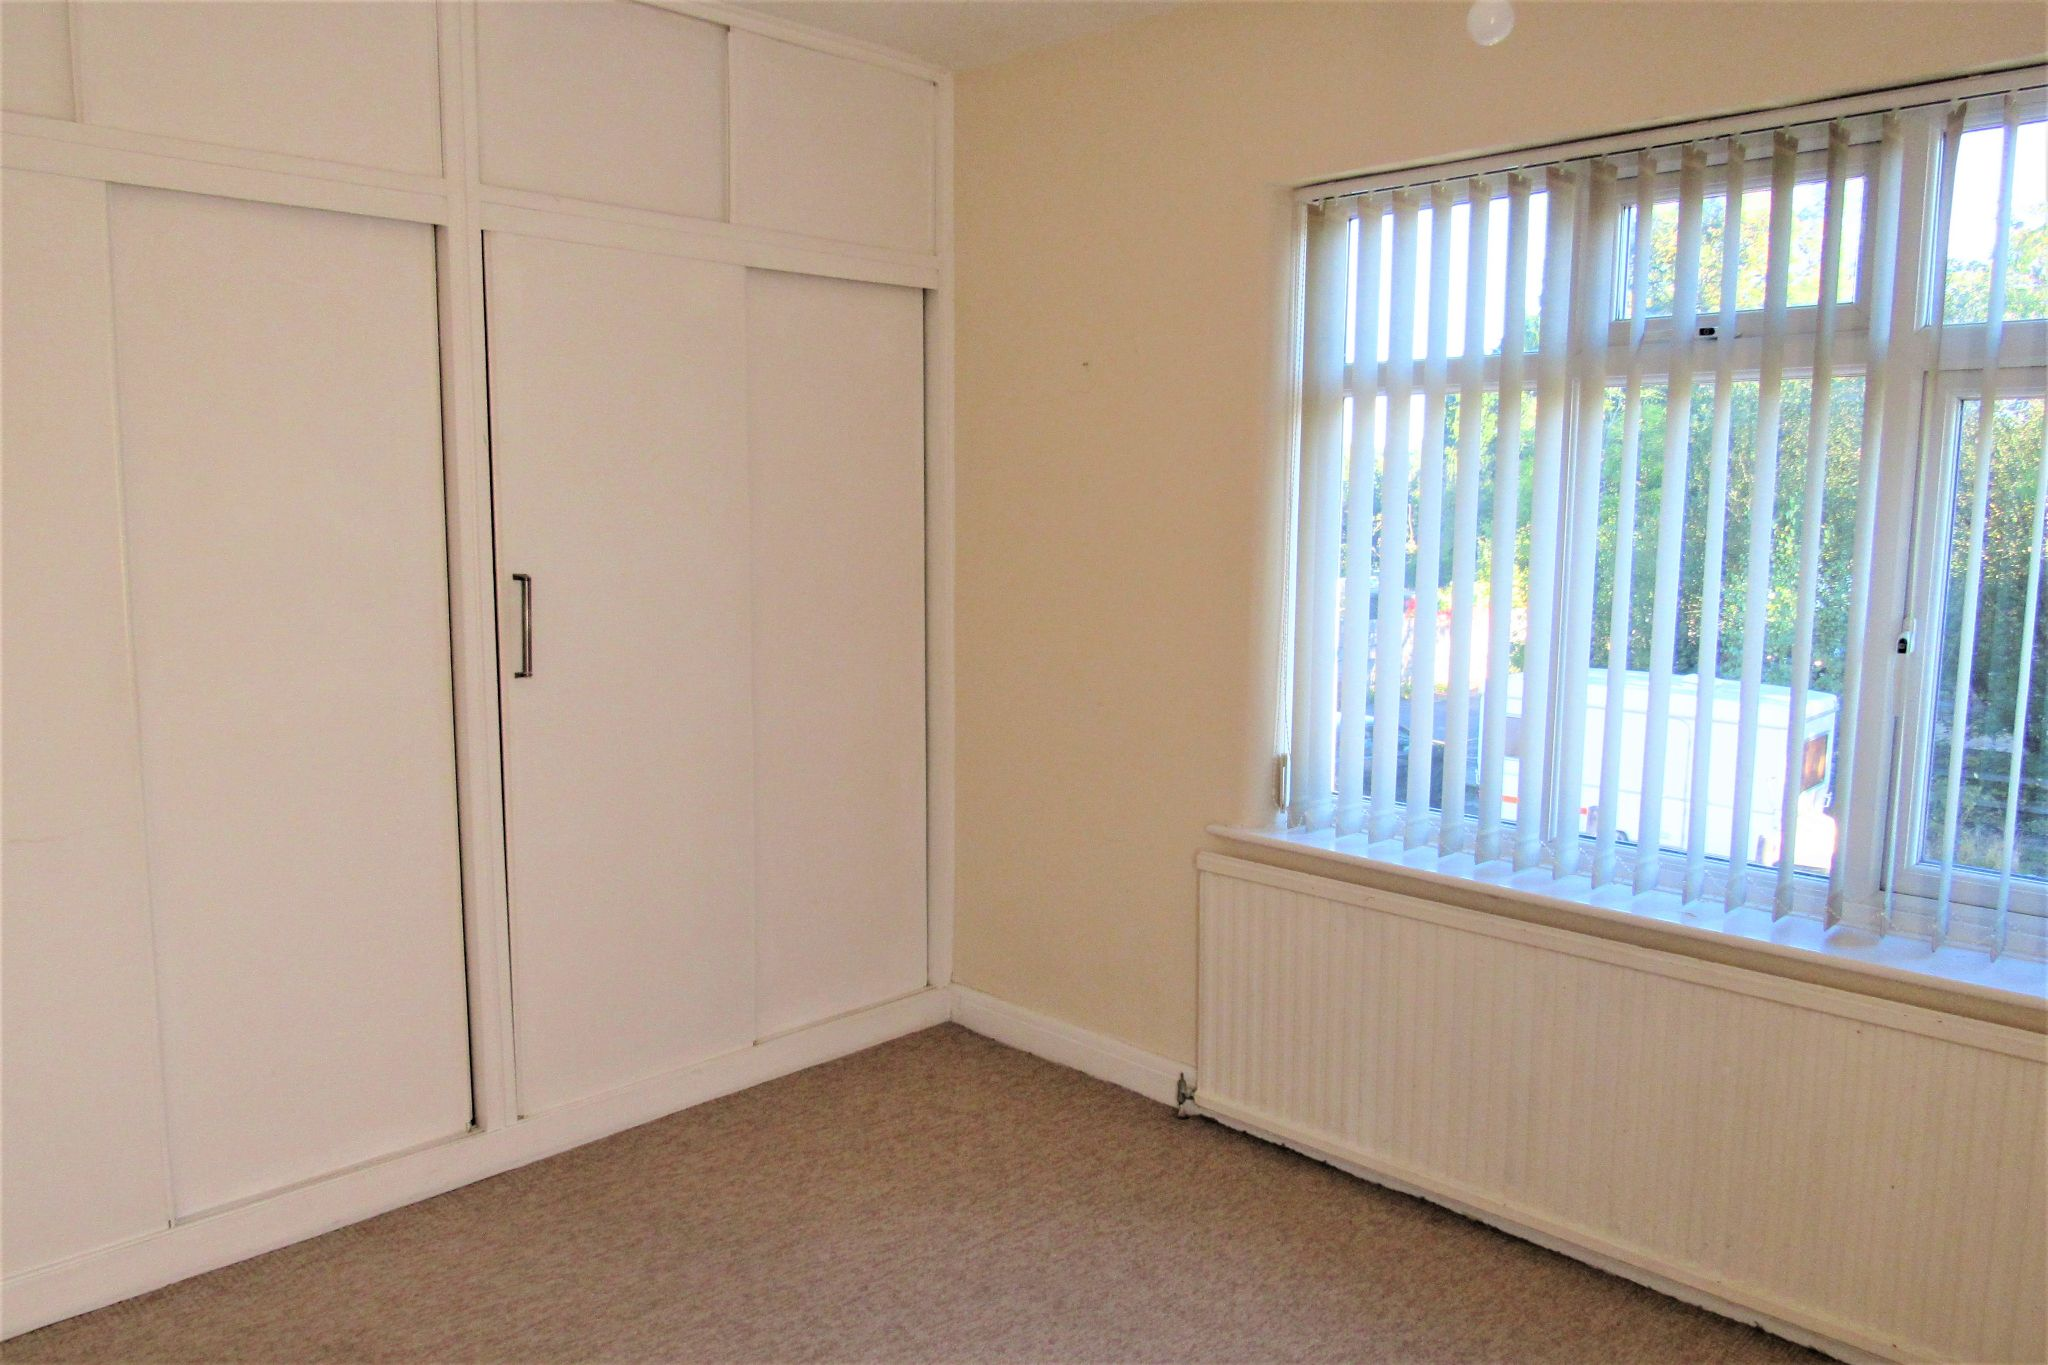 3 bedroom semi-detached house For Sale in Manchester - Photograph 22.